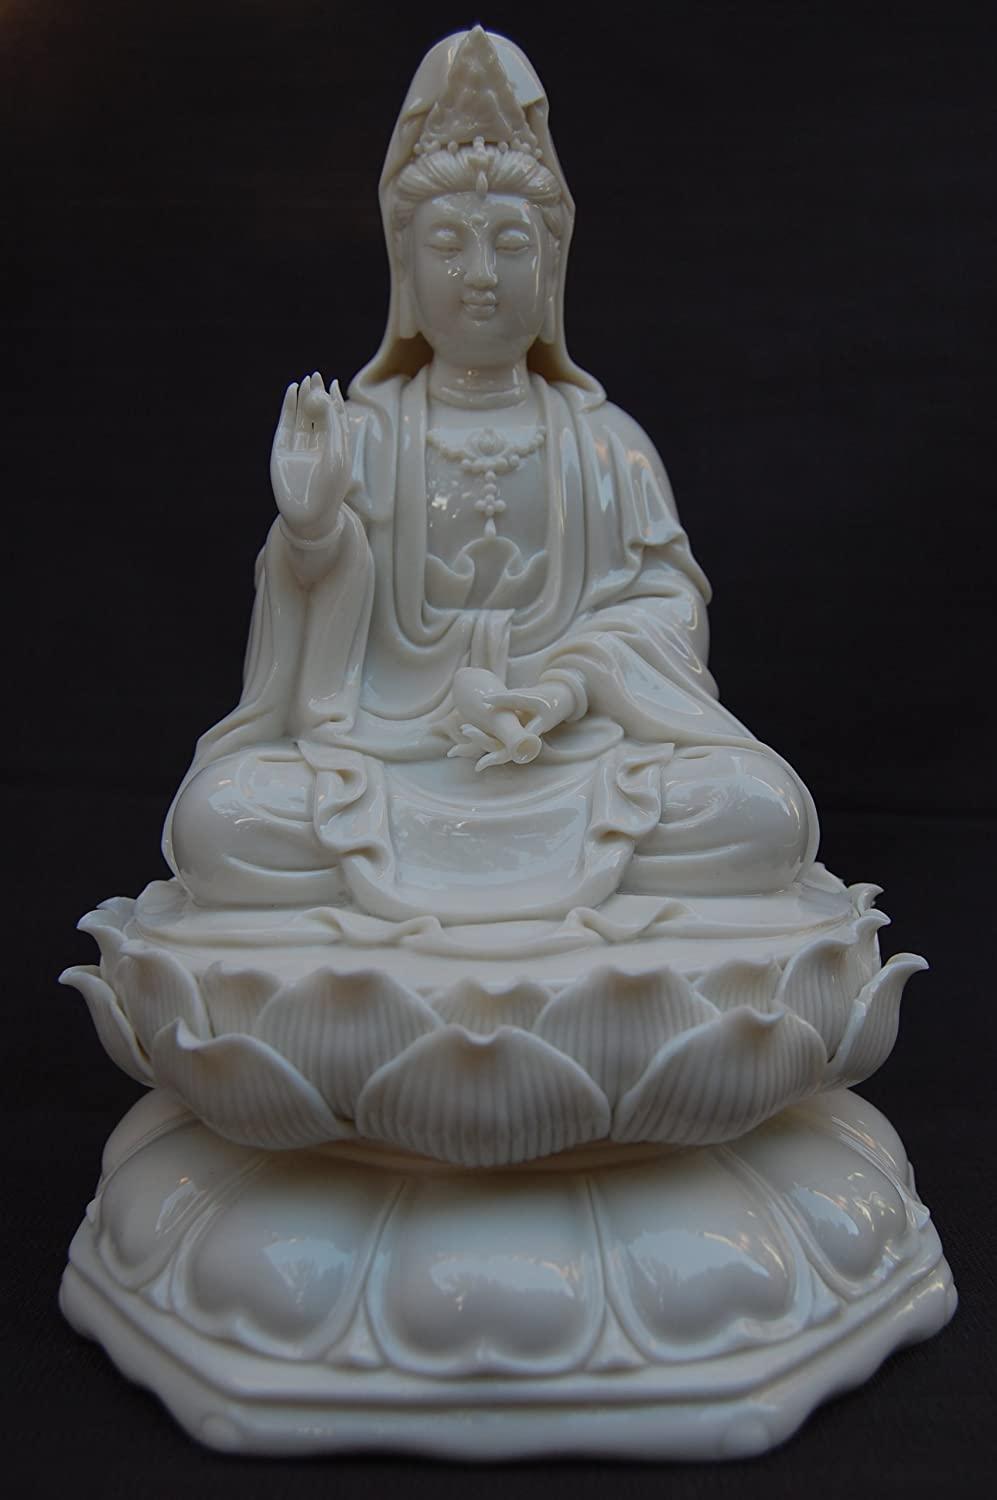 Meditating Quan Yin Buddha Sitting on a Lotus Blossom, White Porcelain Figurine Decoration